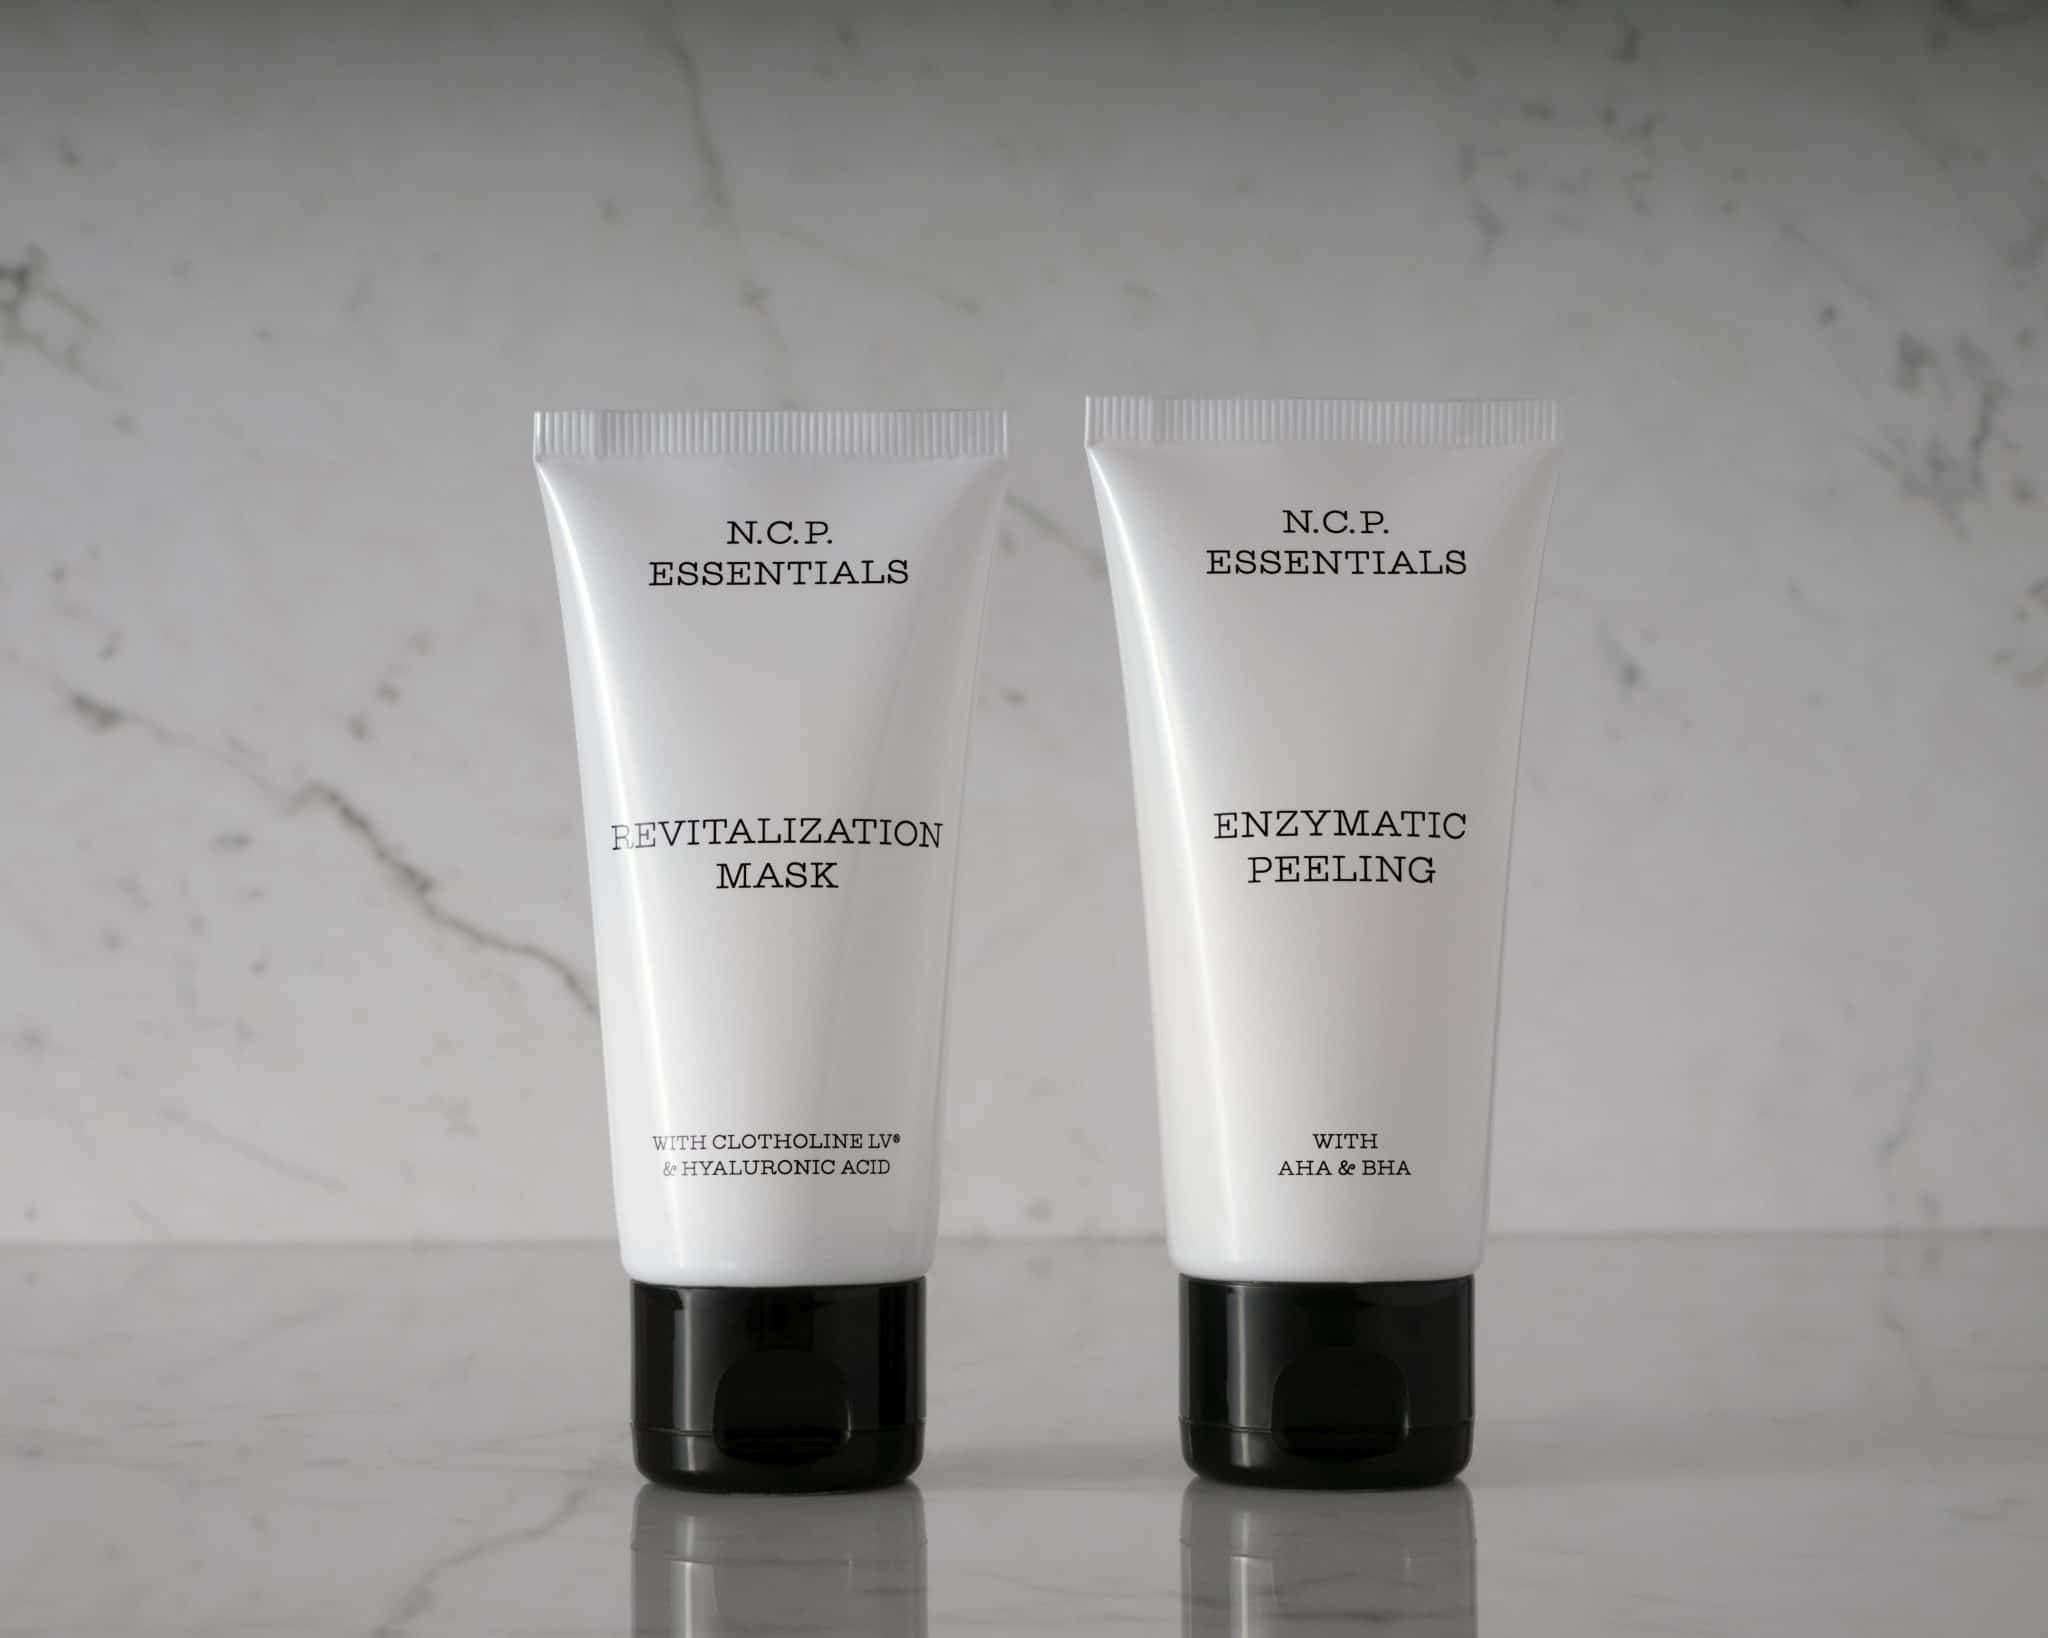 Vegan & fragrance free skincare from N.C.P. Glowing kit with Revitalization Mask a white bottle with black text and black cap & Enzymatic Peeling a white bottle with black text and black cap. Picture is black and white with marble background.